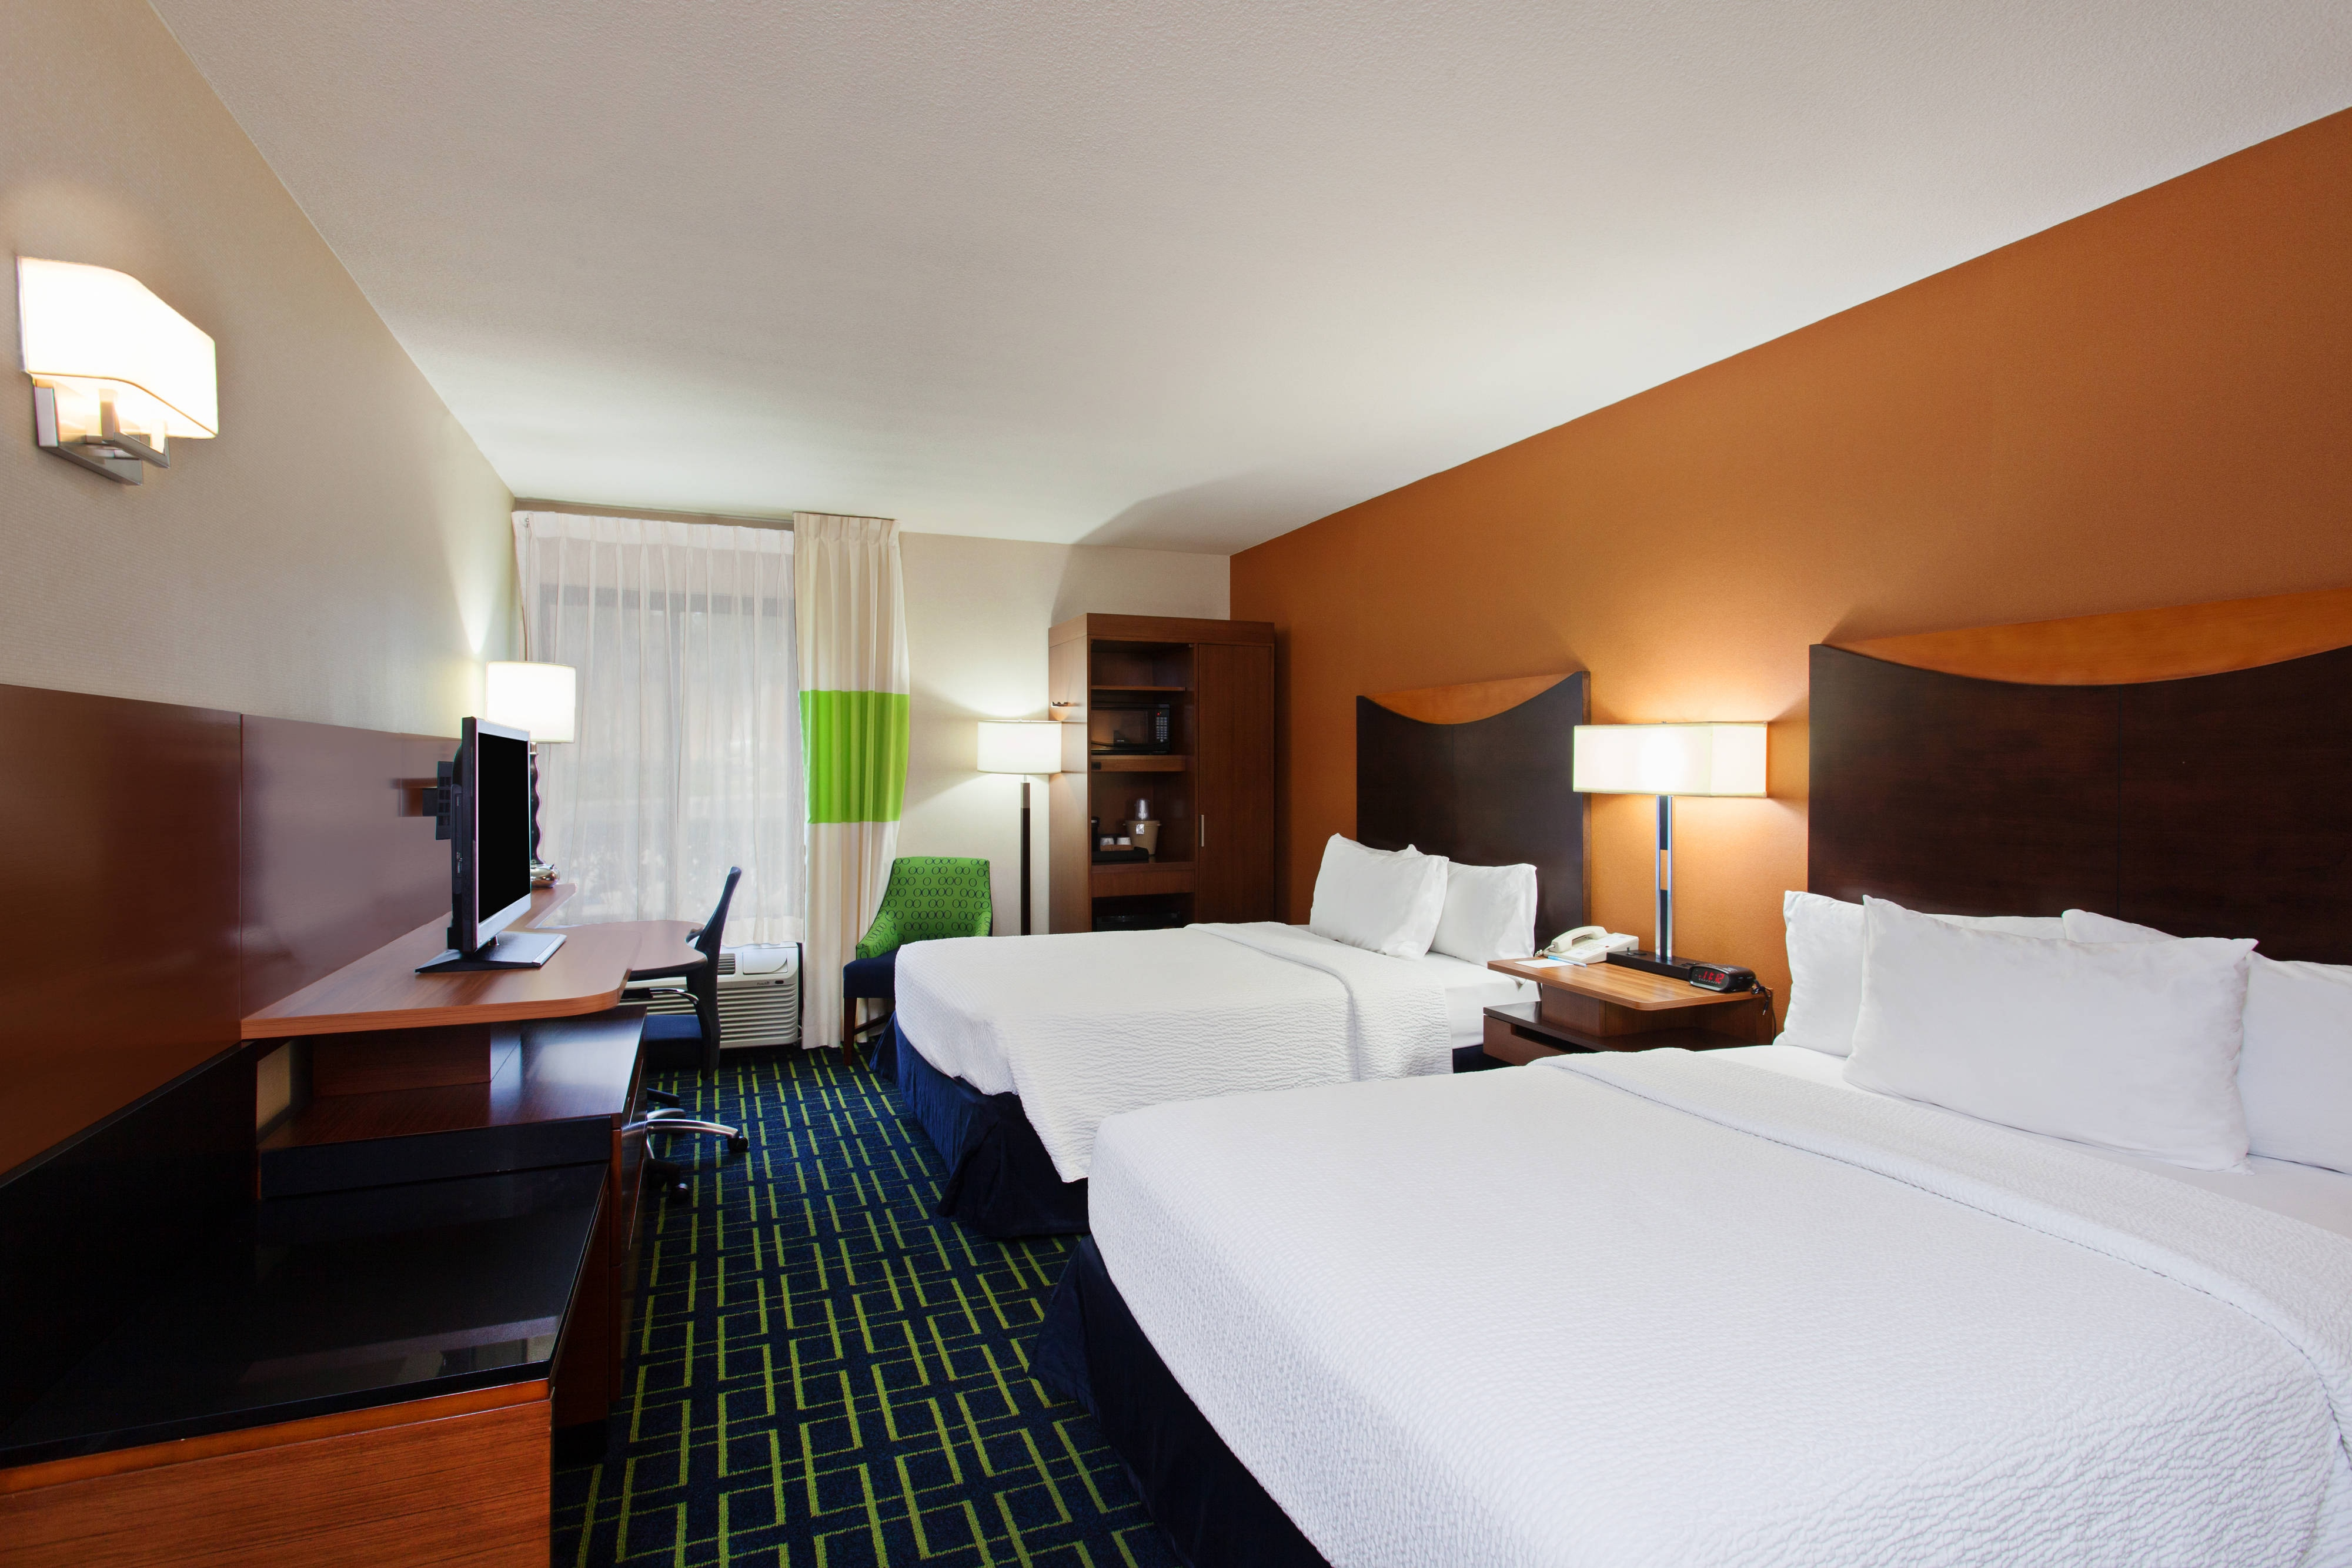 DoubleDouble Guest Room Mission Viejo CA Hotel